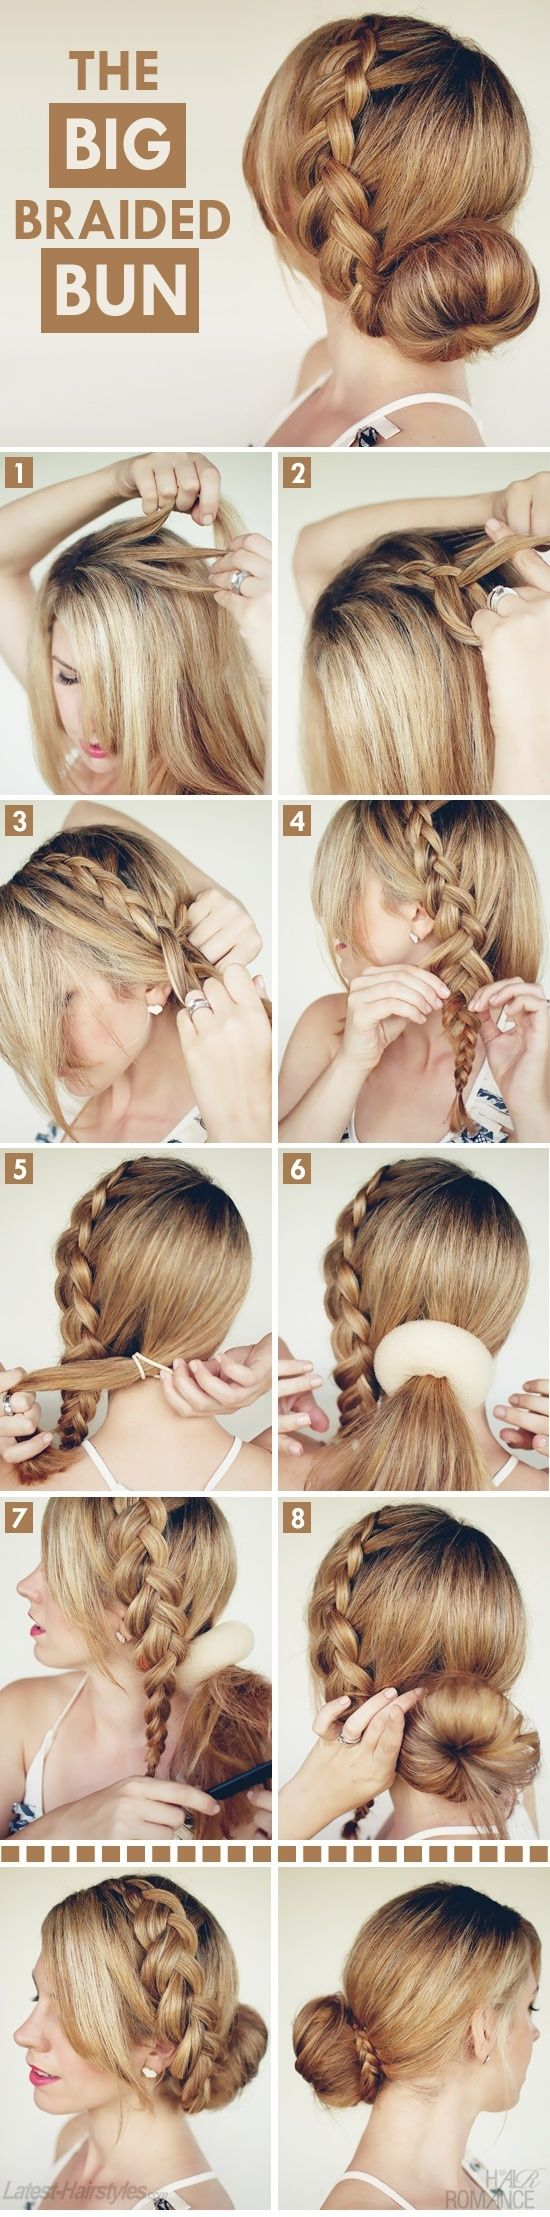 20 Clever And Interesting Tutorials For Hairstyles - we love this braided bun!